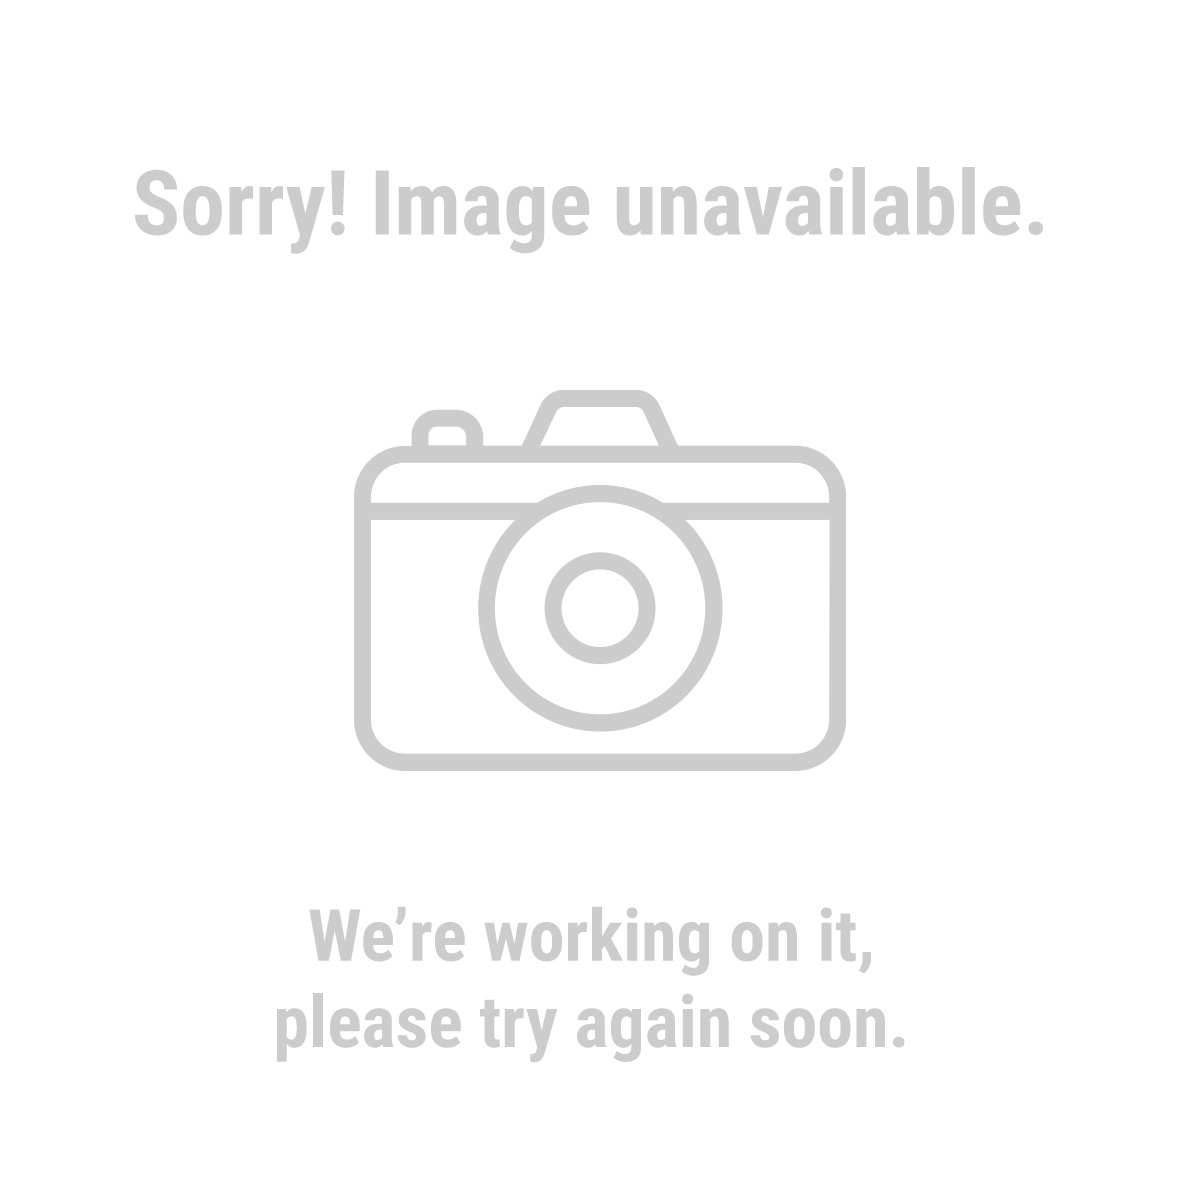 12 000 Lb Badland Winch Wiring Diagram 12000 - warn winch ... Harbor Freight Badlands Winch Wiring Diagram on